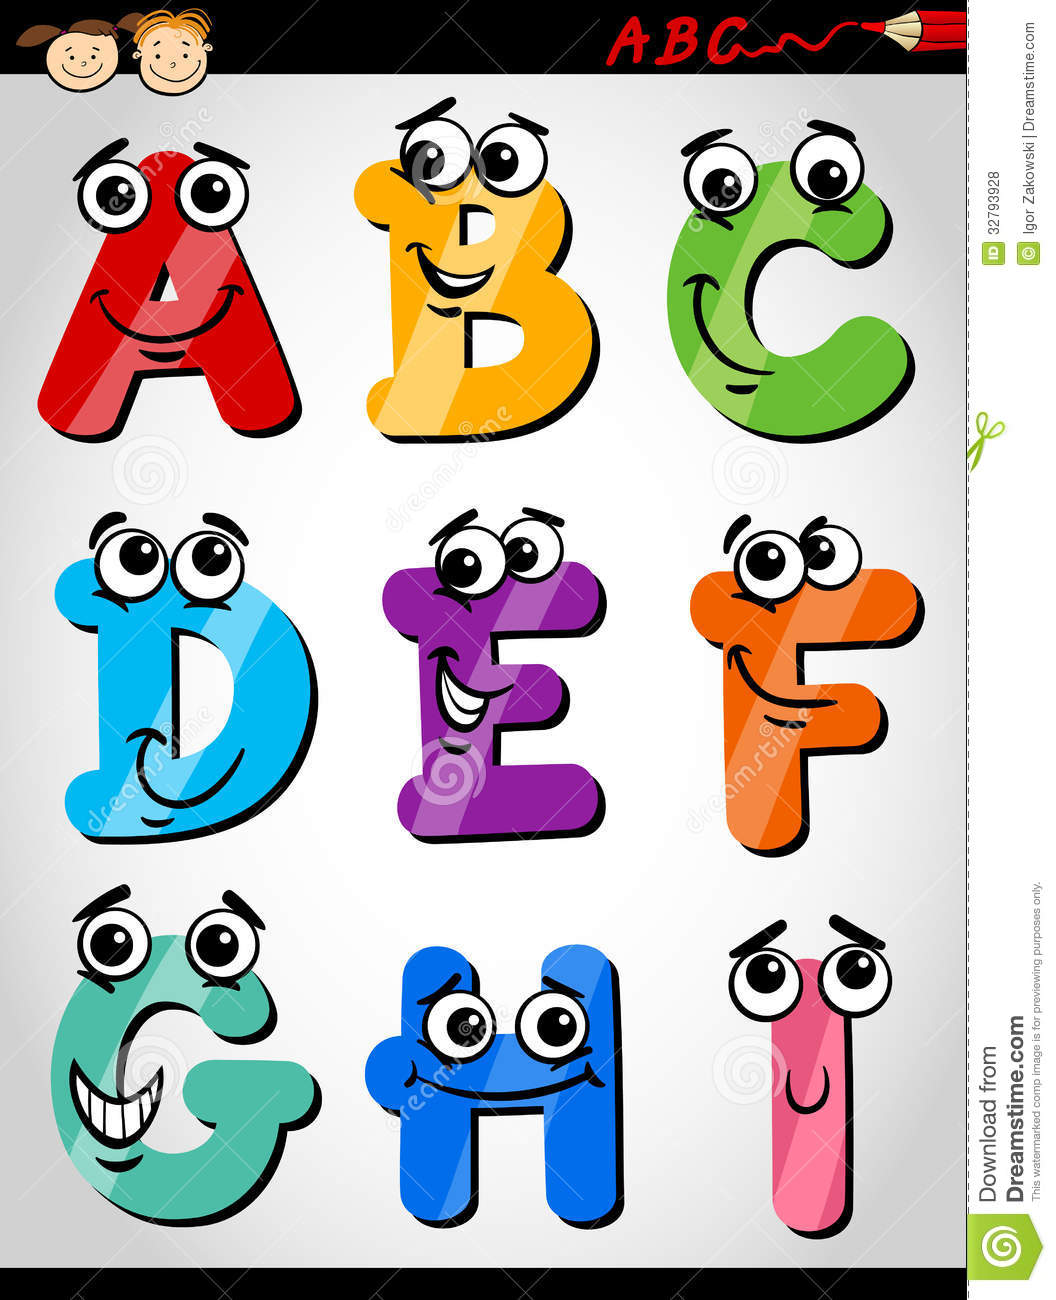 Cartoon Characters 9 Letters : Funny letters alphabet cartoon illustration stock vector